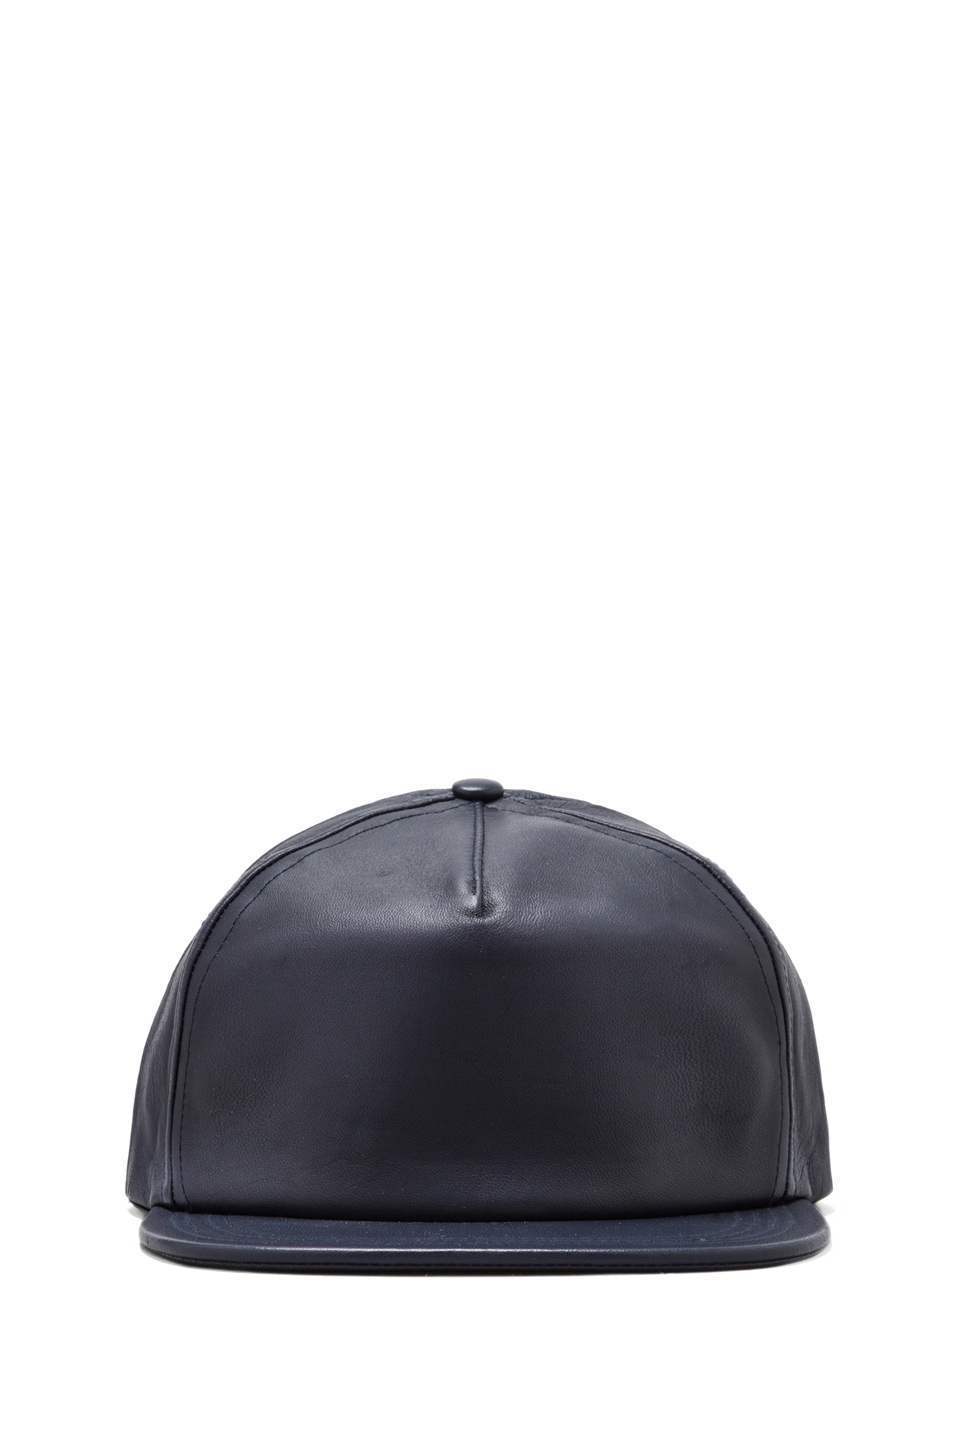 Cast of Vices Lambskin Leather Hat in Navy